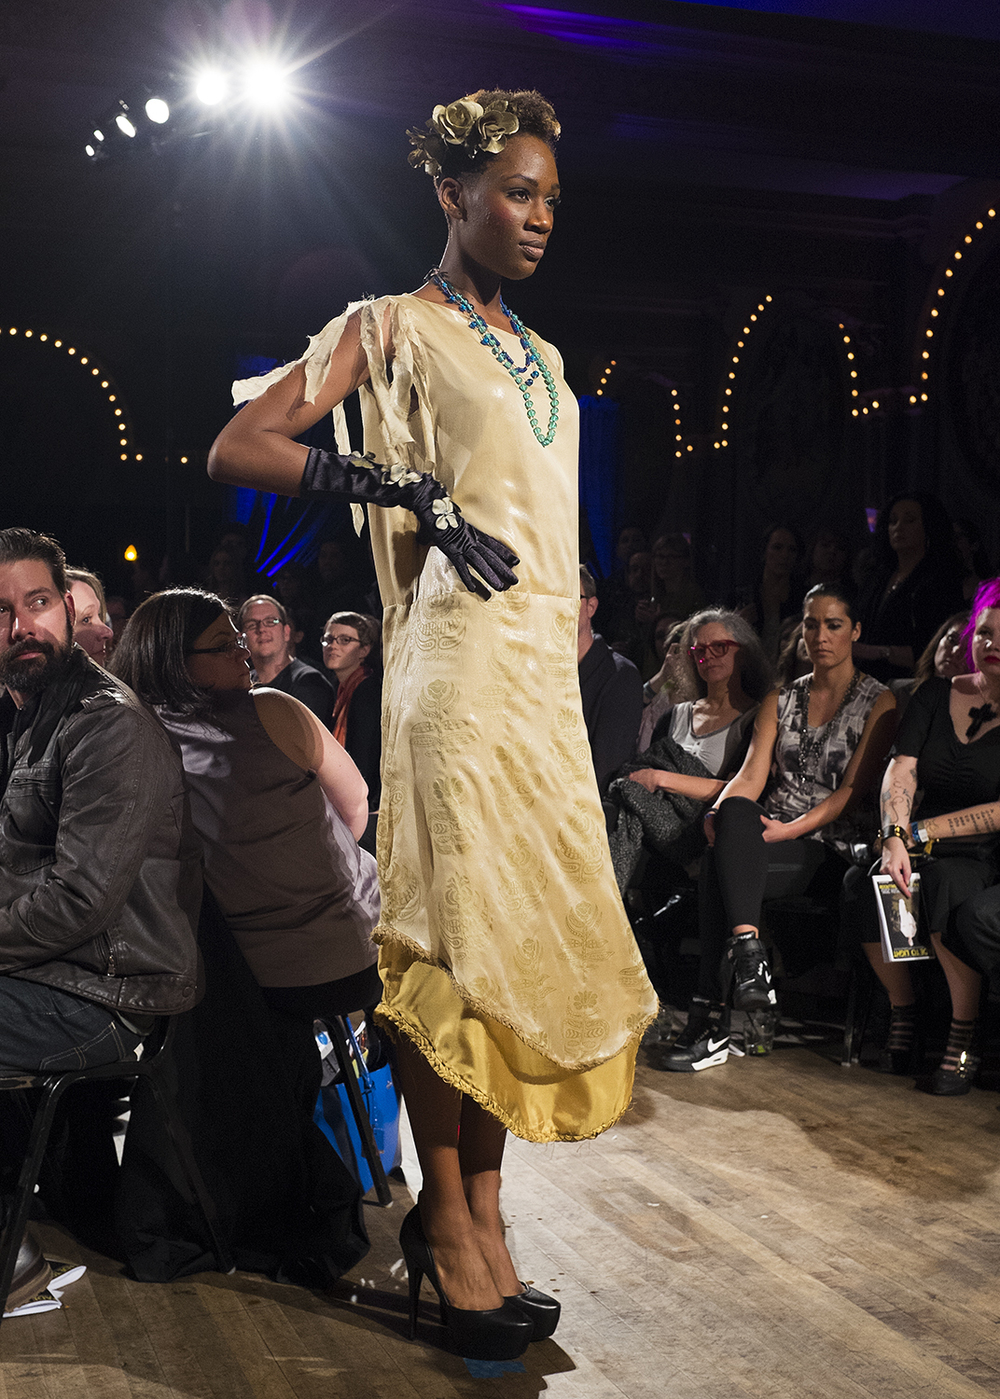 Model walking on runway wearing golden dress